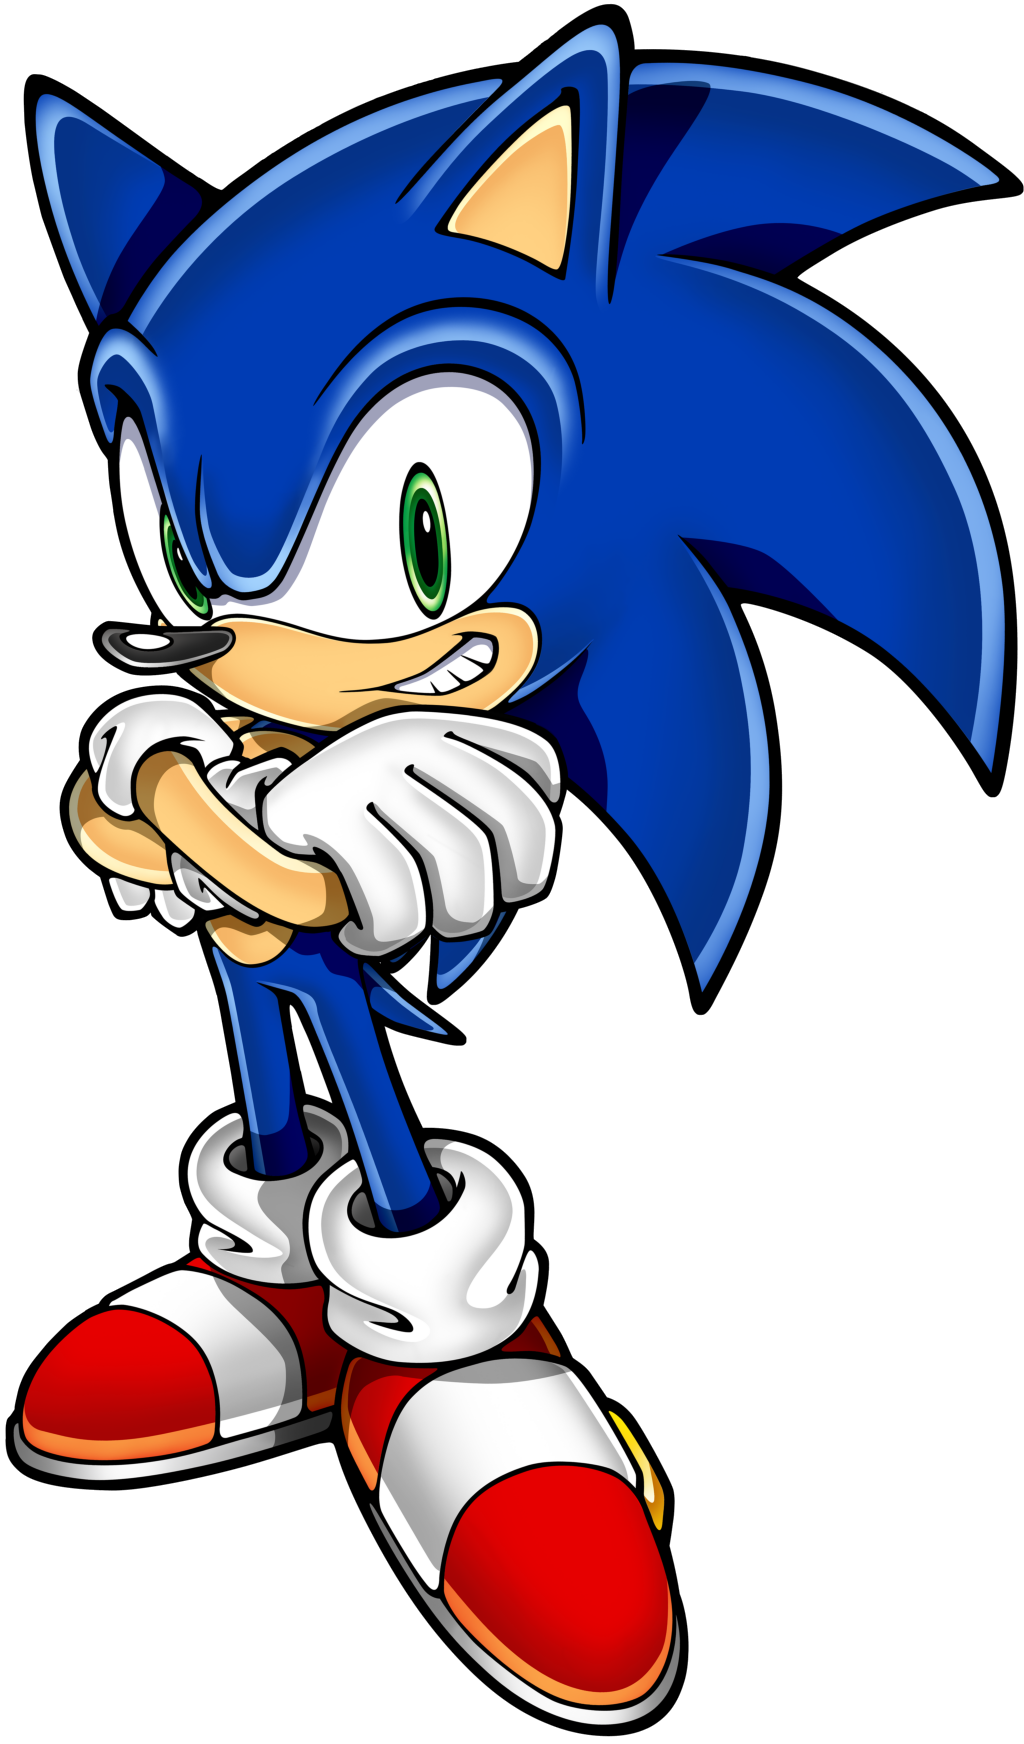 Sonic Hd Png Transparent Sonic Hd Png Images Pluspng